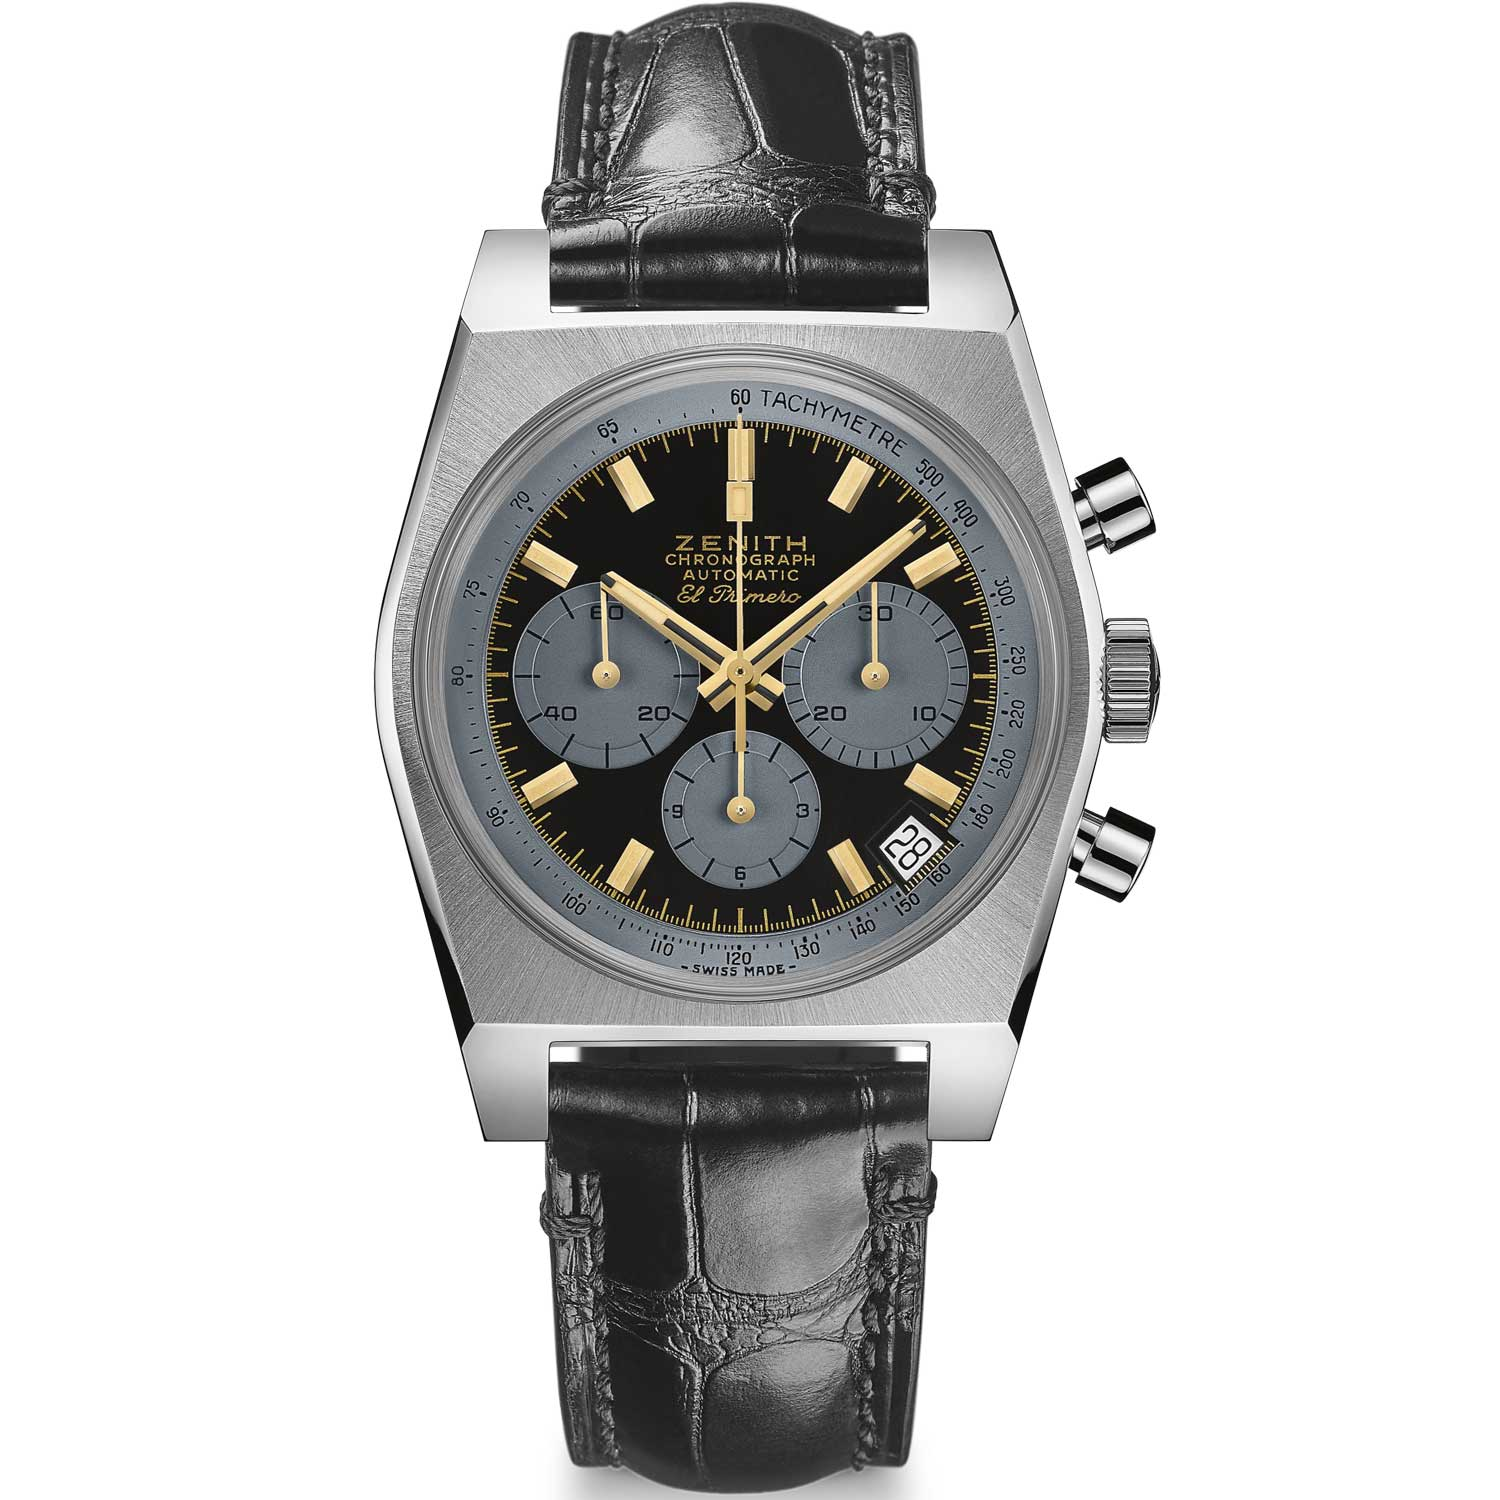 """Zenith A384 Revival """"Lupin The Third"""" Edition"""